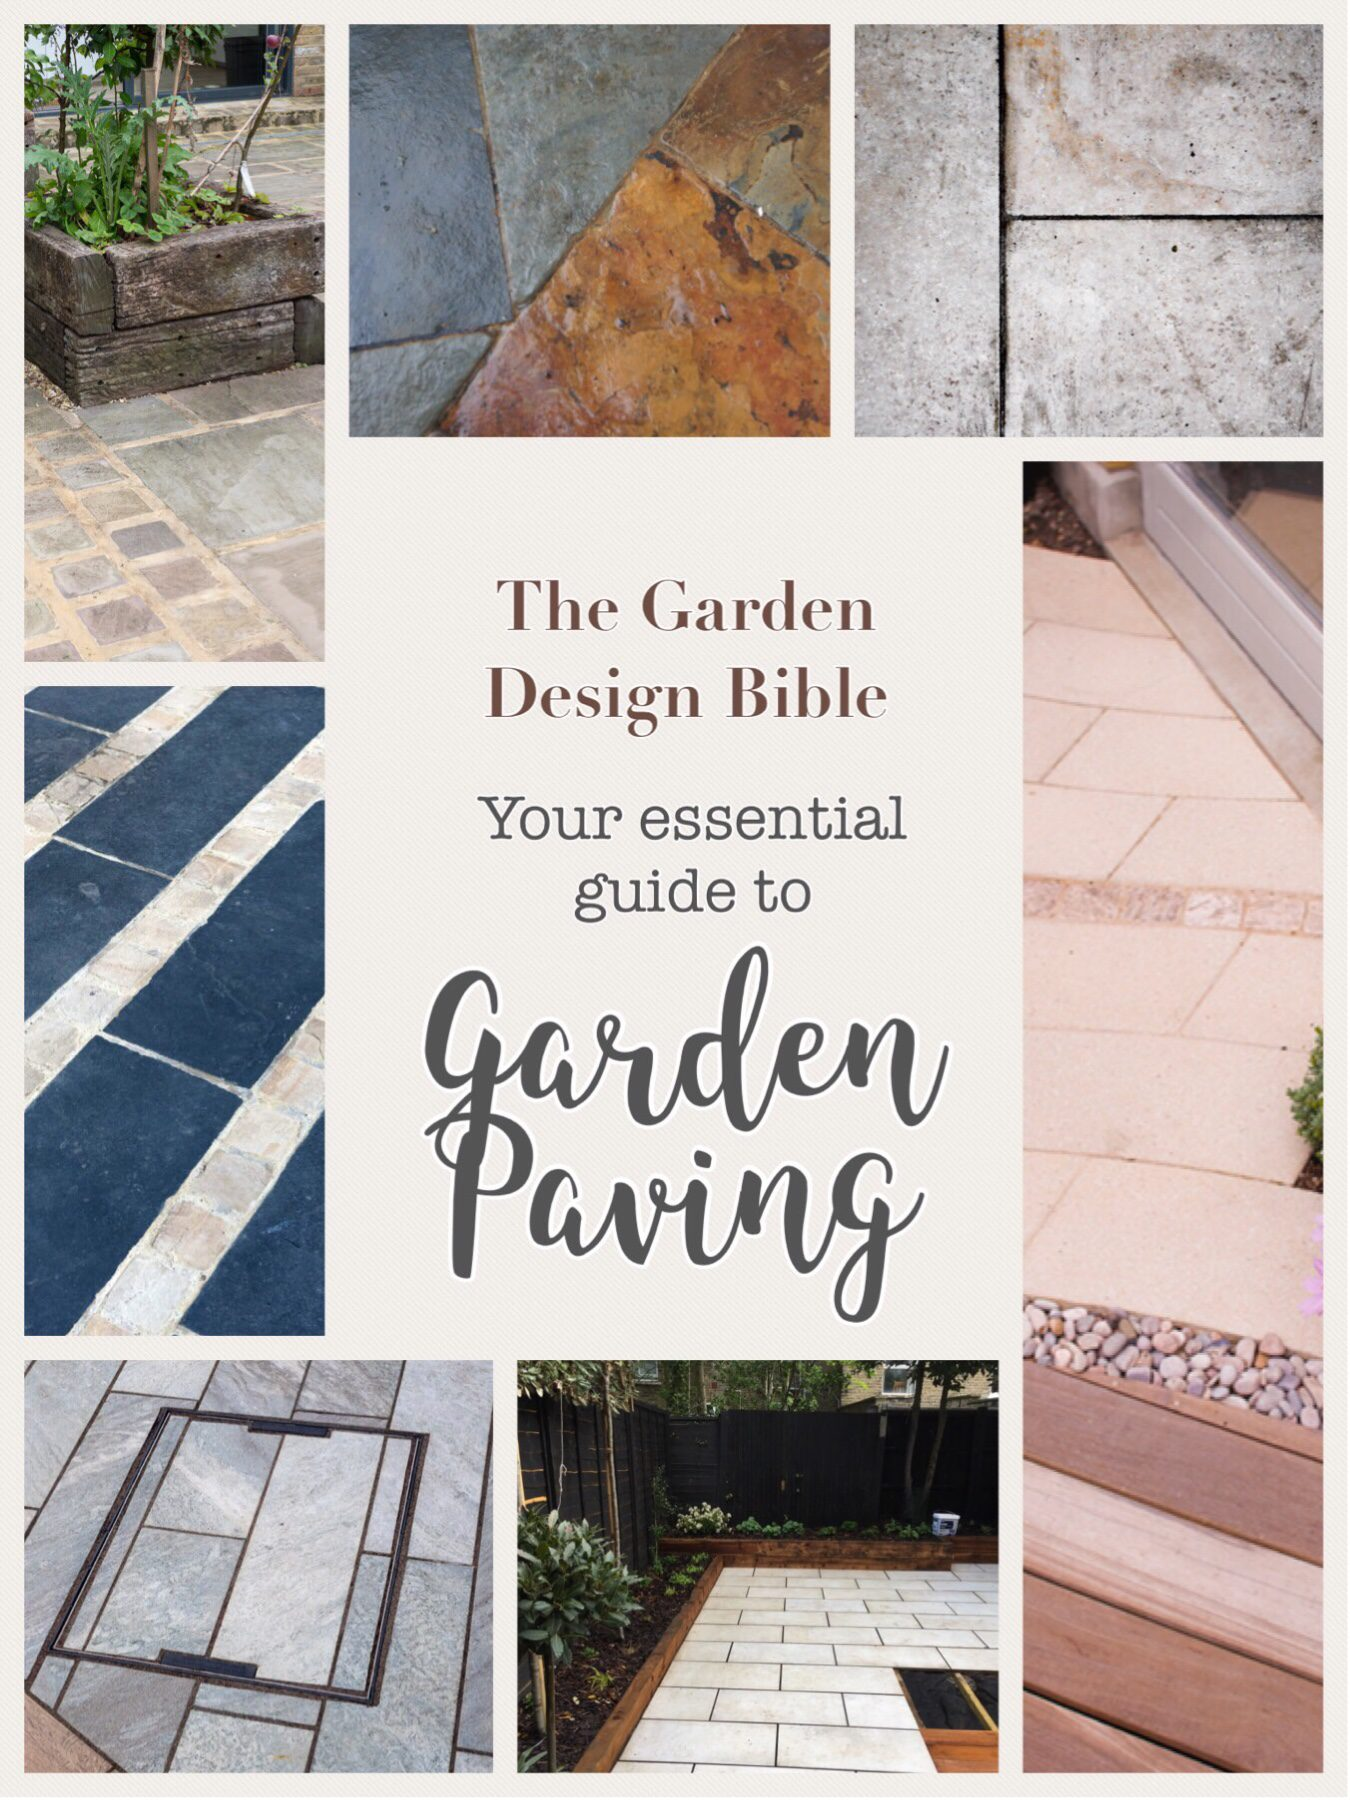 Garden paving design - your ultimate guide